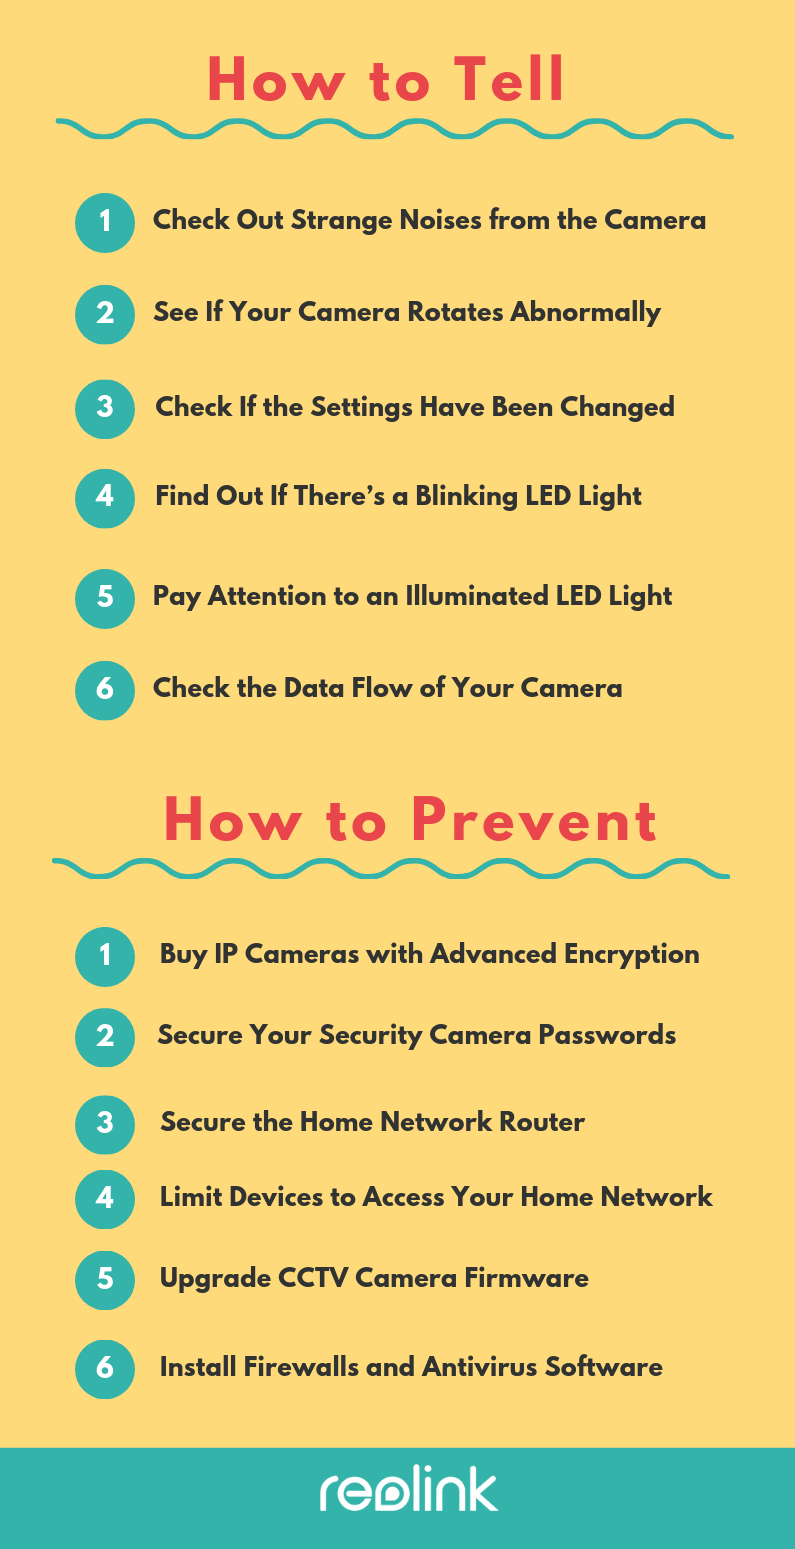 How to Tell & Prevent Security Camera Hacking